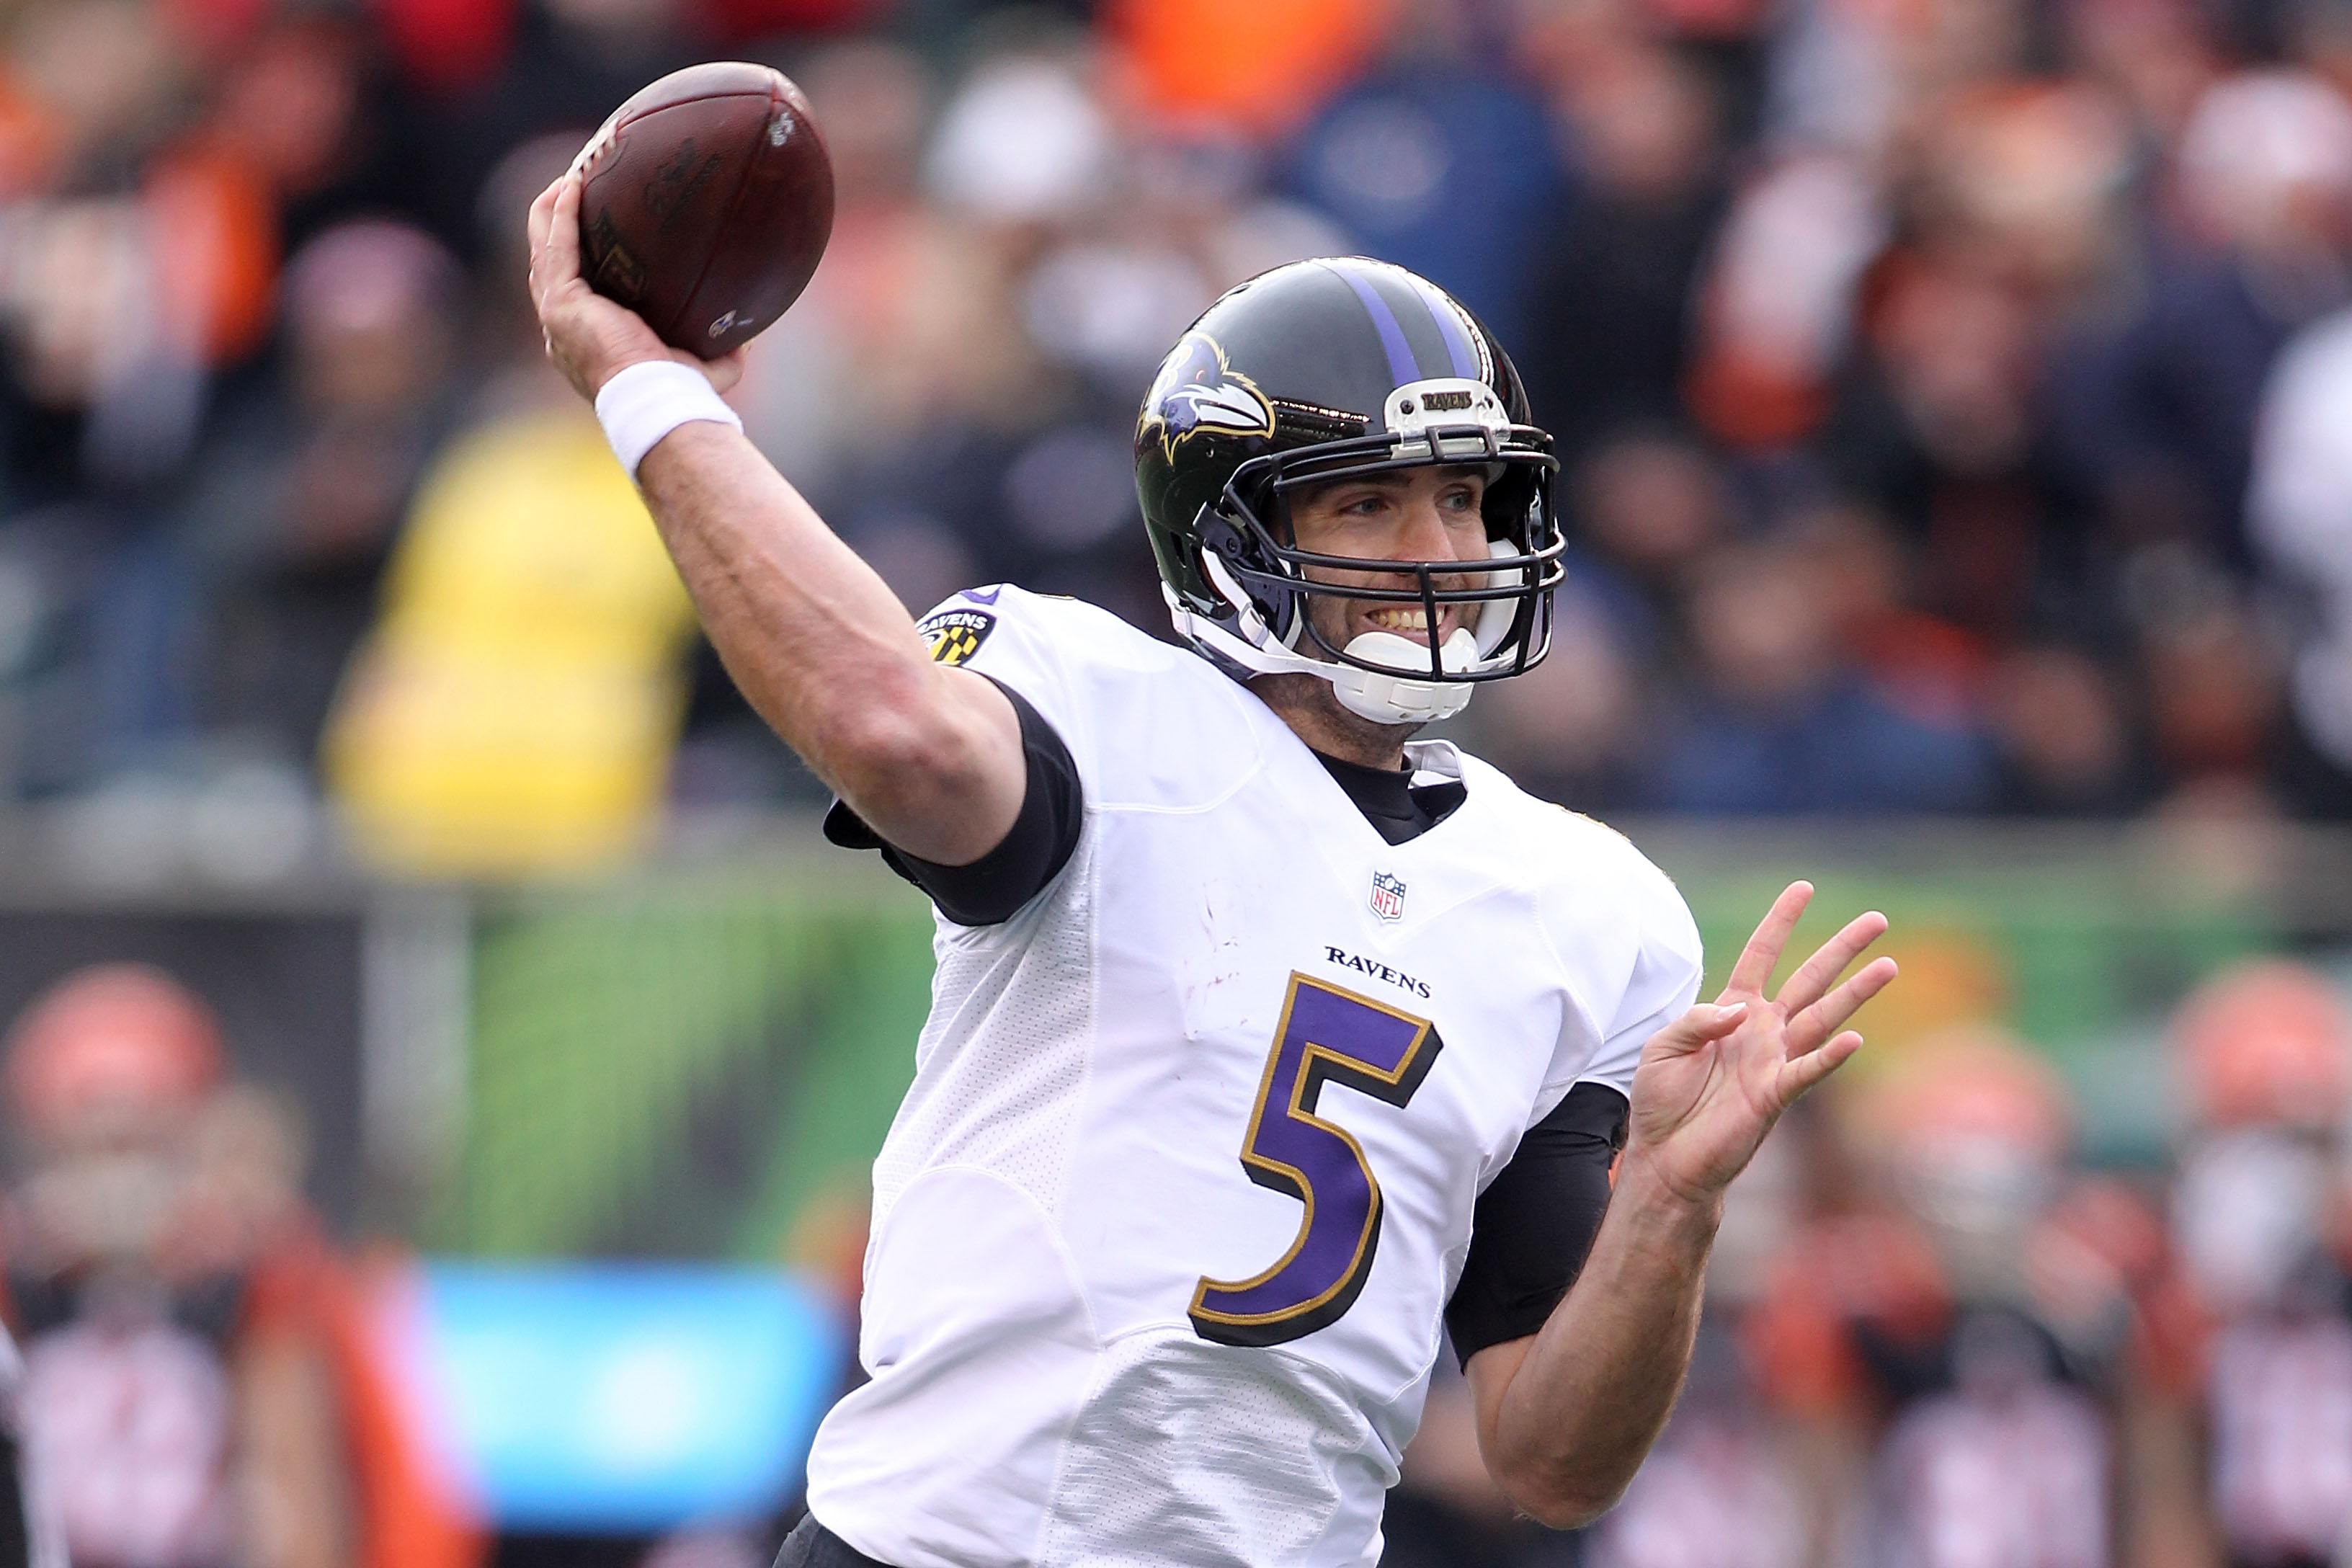 Ravens' Joe Flacco Dealing With Back Injury, Timetable For Return Unclear